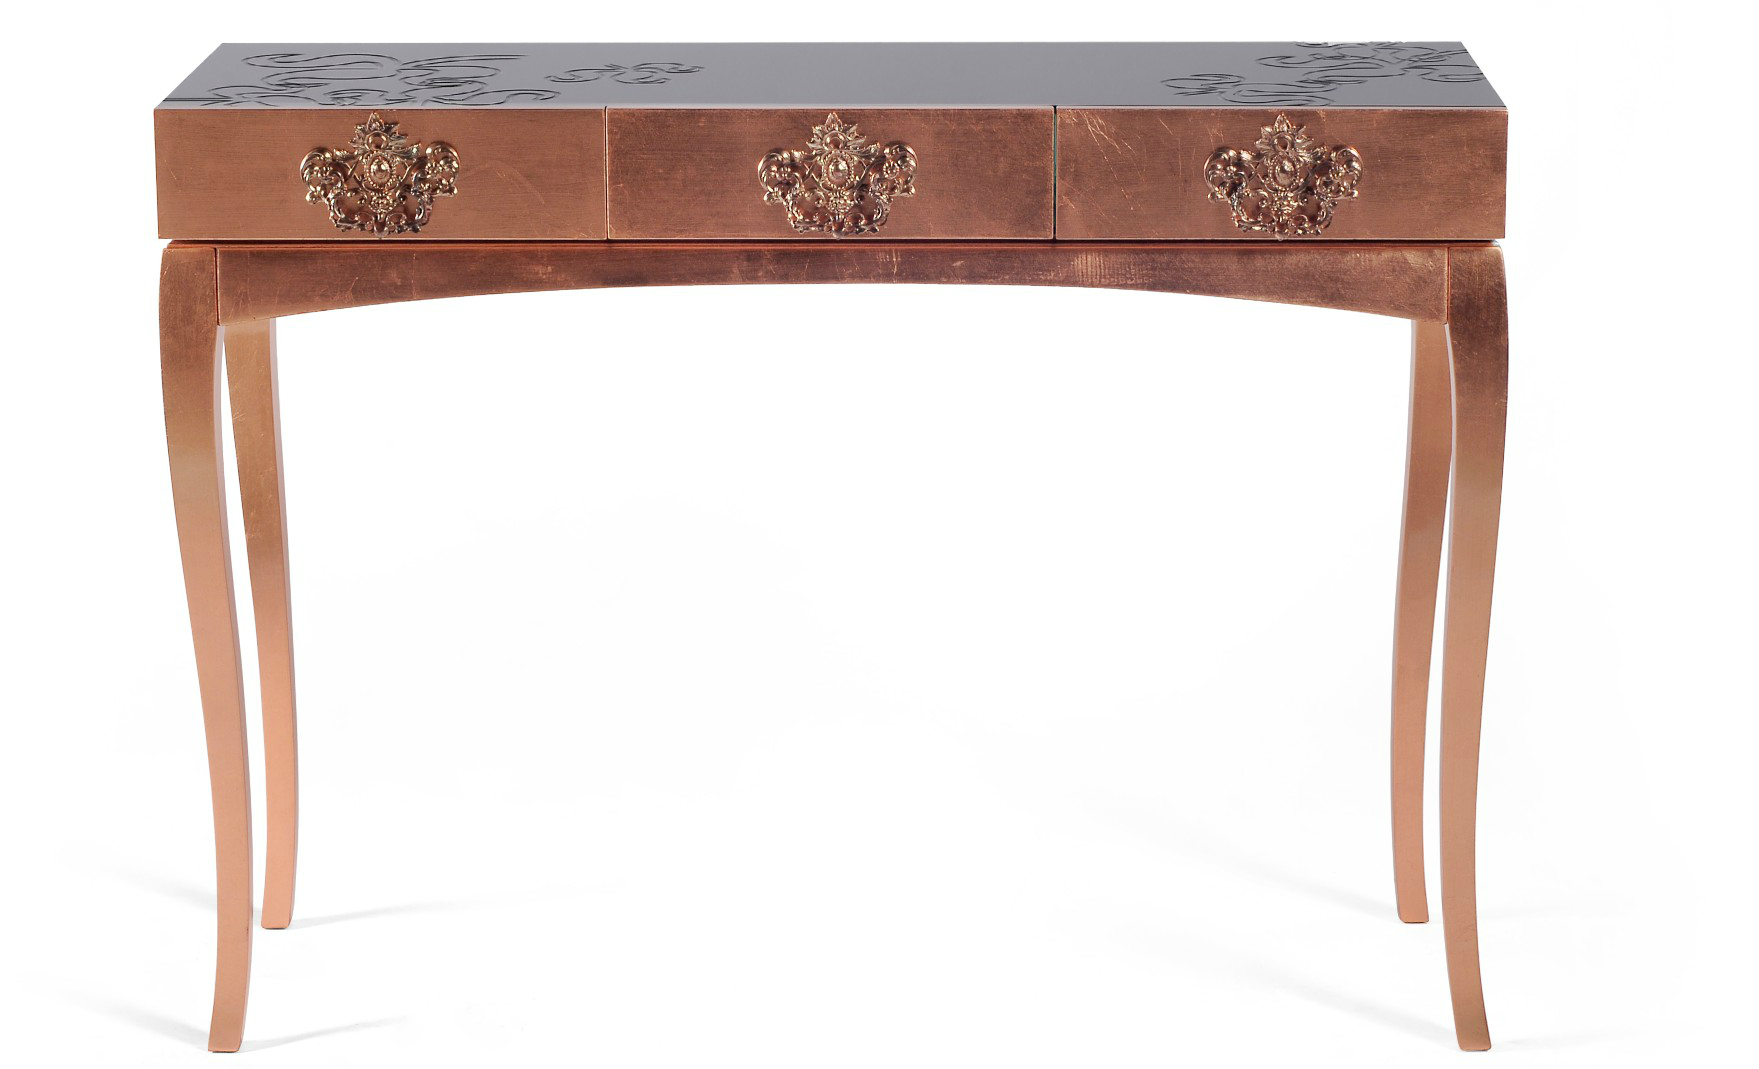 console table 10 Slender And Elegant Console Tables for Small Spaces trinity console MCT 1